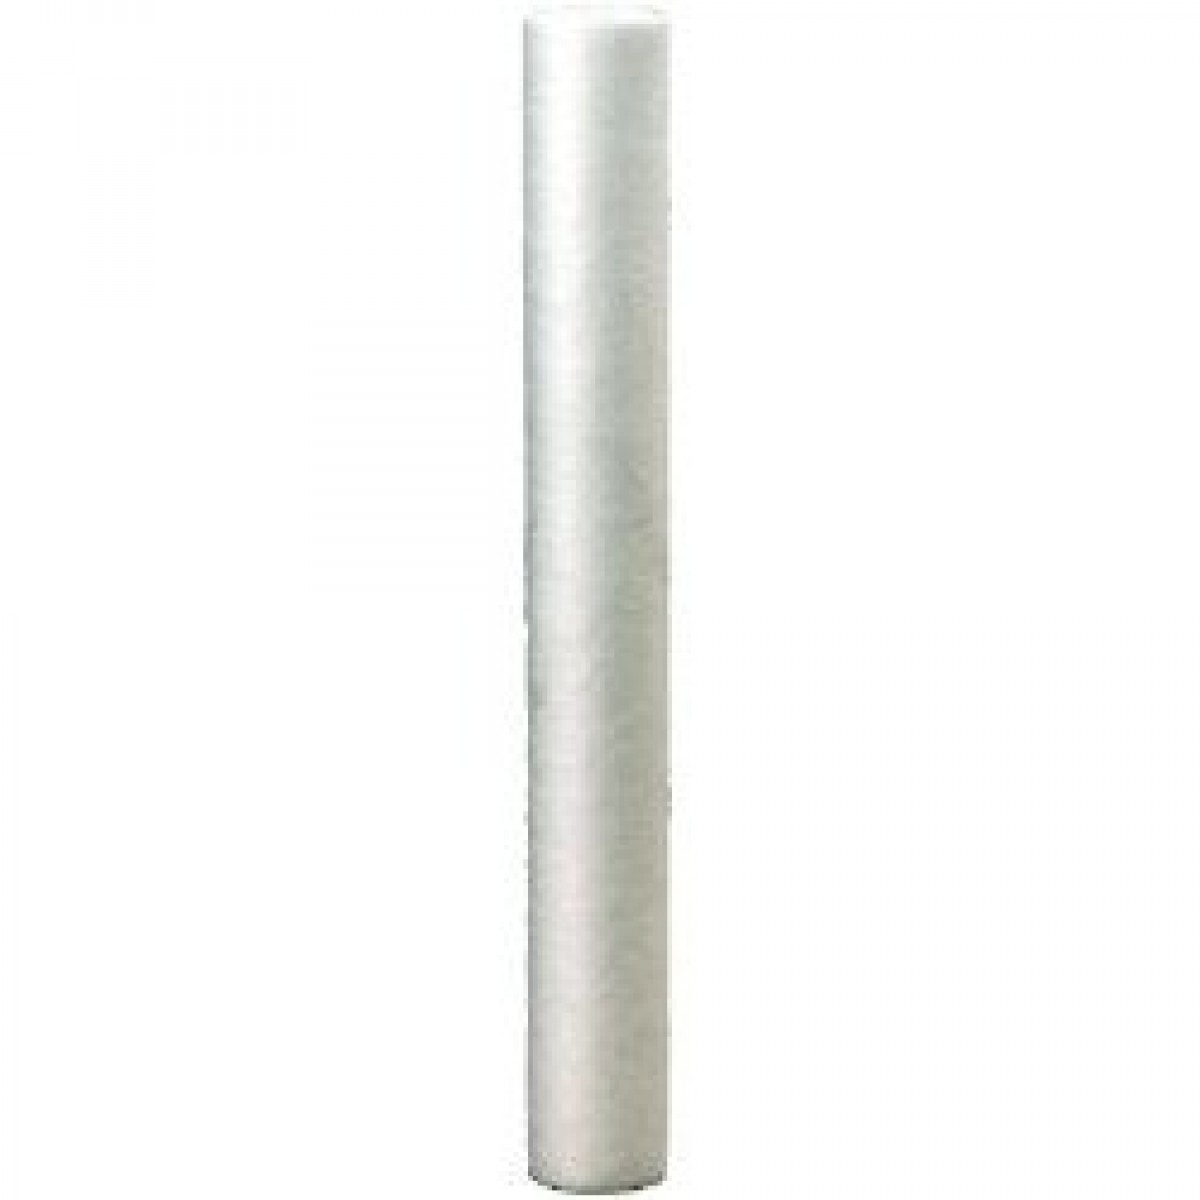 Px01 30 Purtrex Sediment Filter Cartridge 226